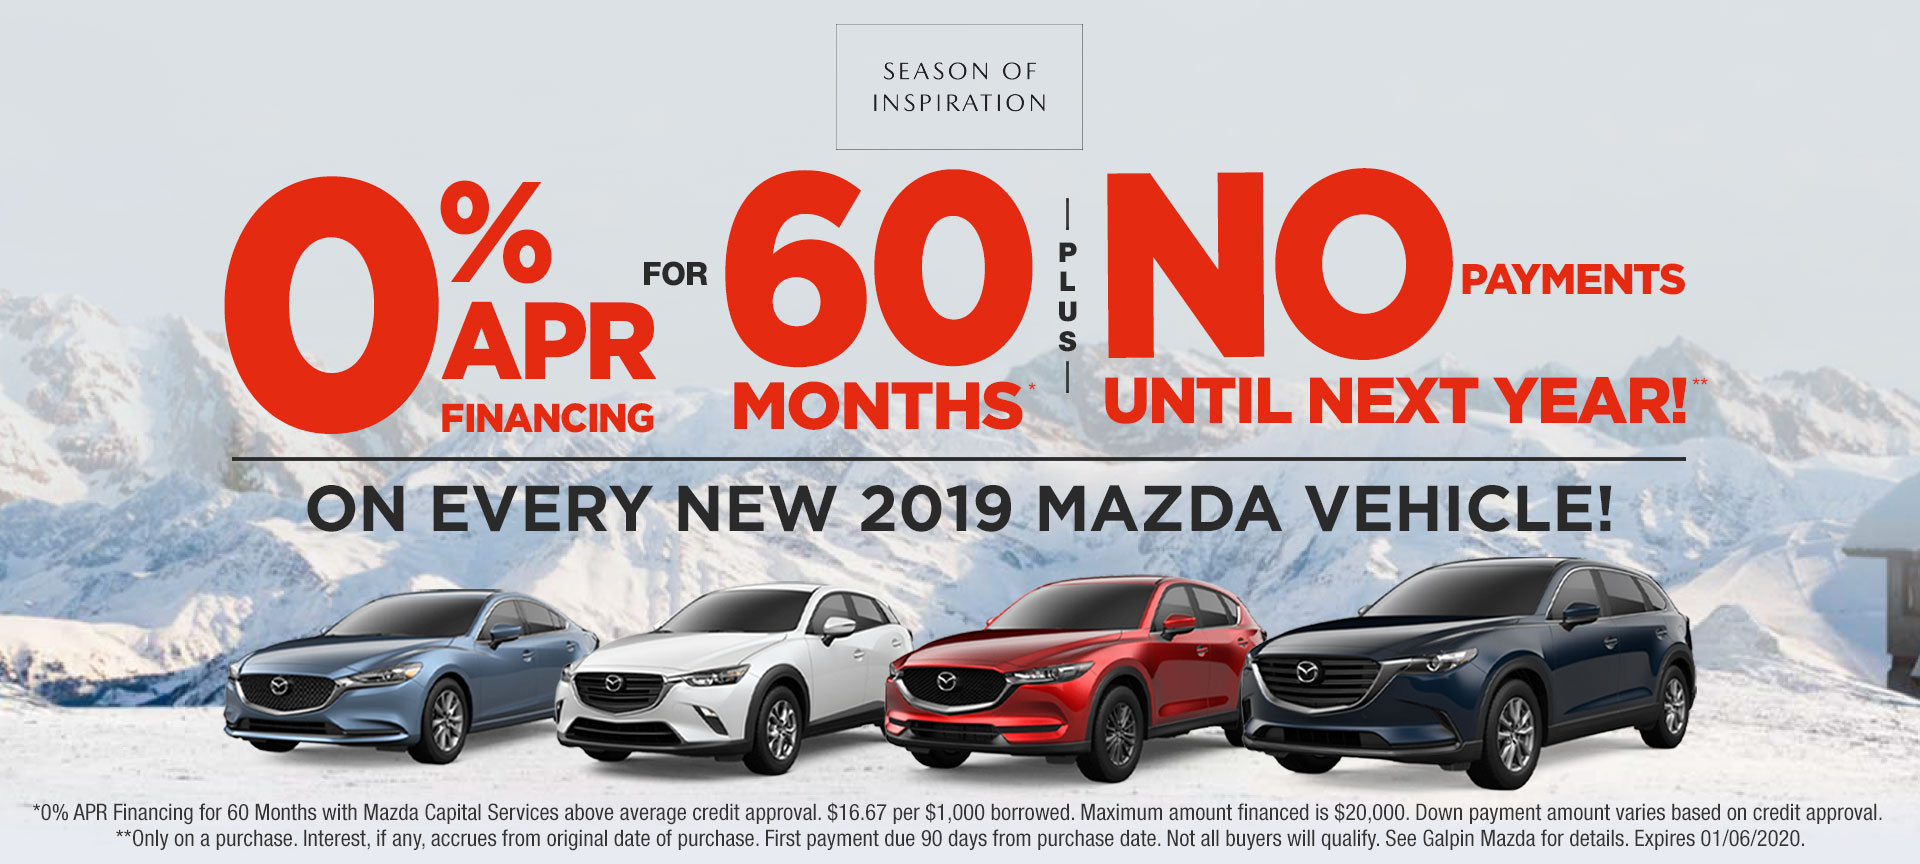 Mazda Season to Inspire 0% APR for 60 months and no payments for 90 days until next year. On every New 2019 Mazda Vehicle